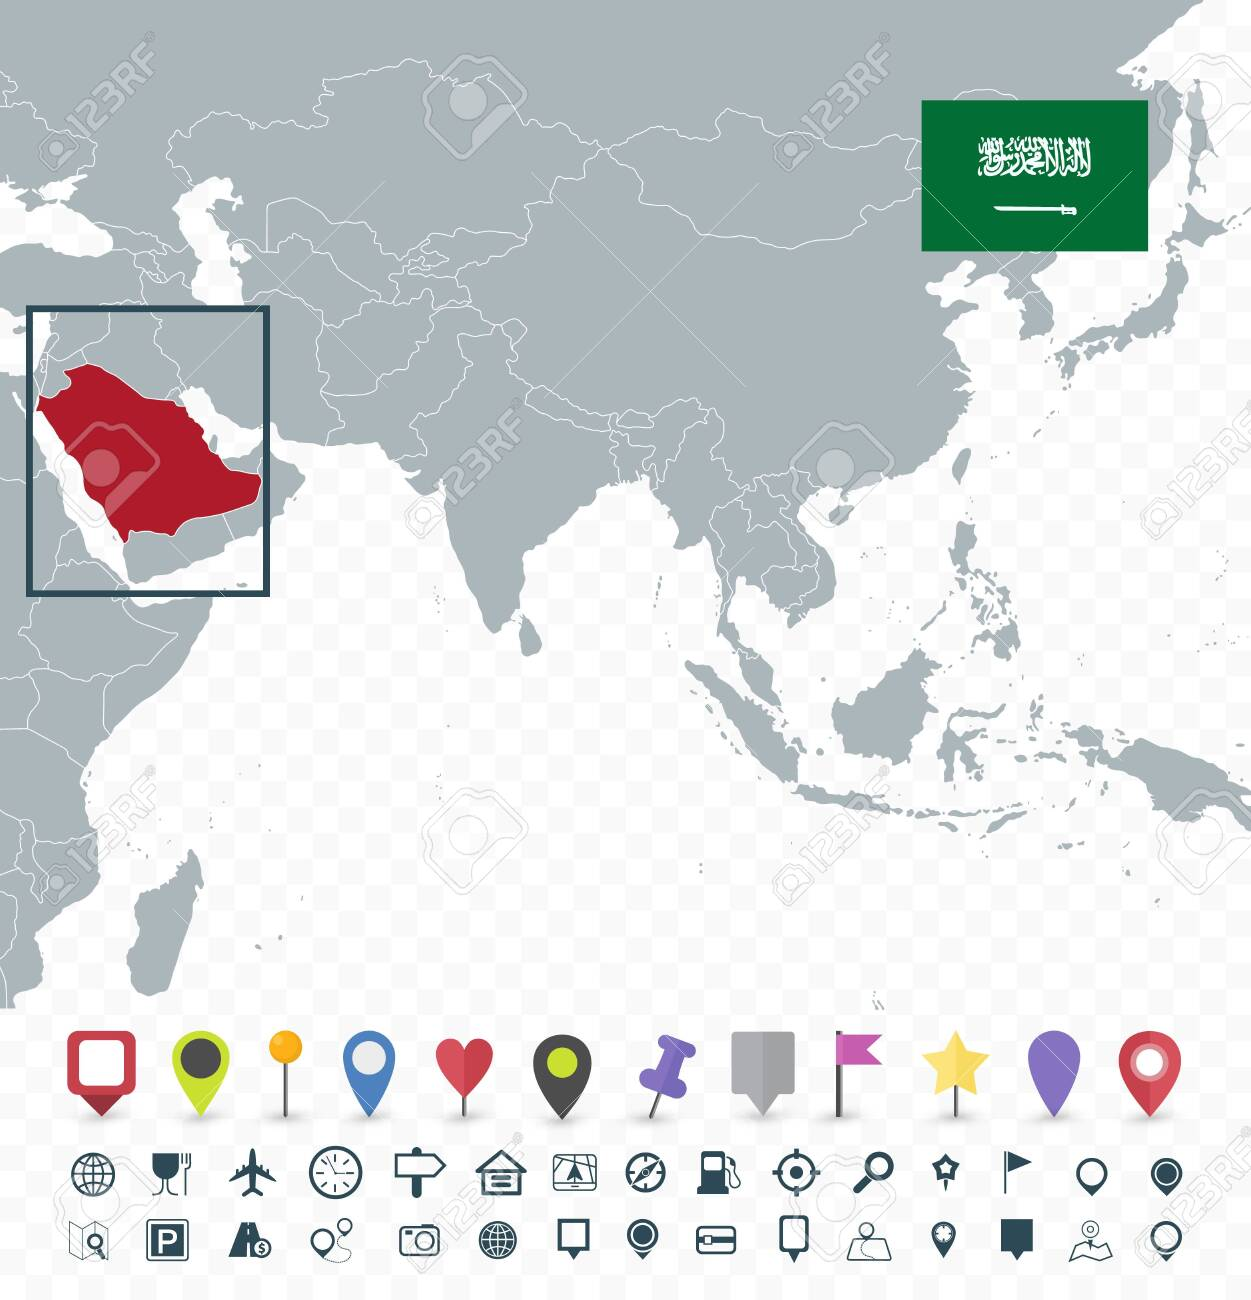 Saudi Arabia location on Asia Map - Transparent background -..